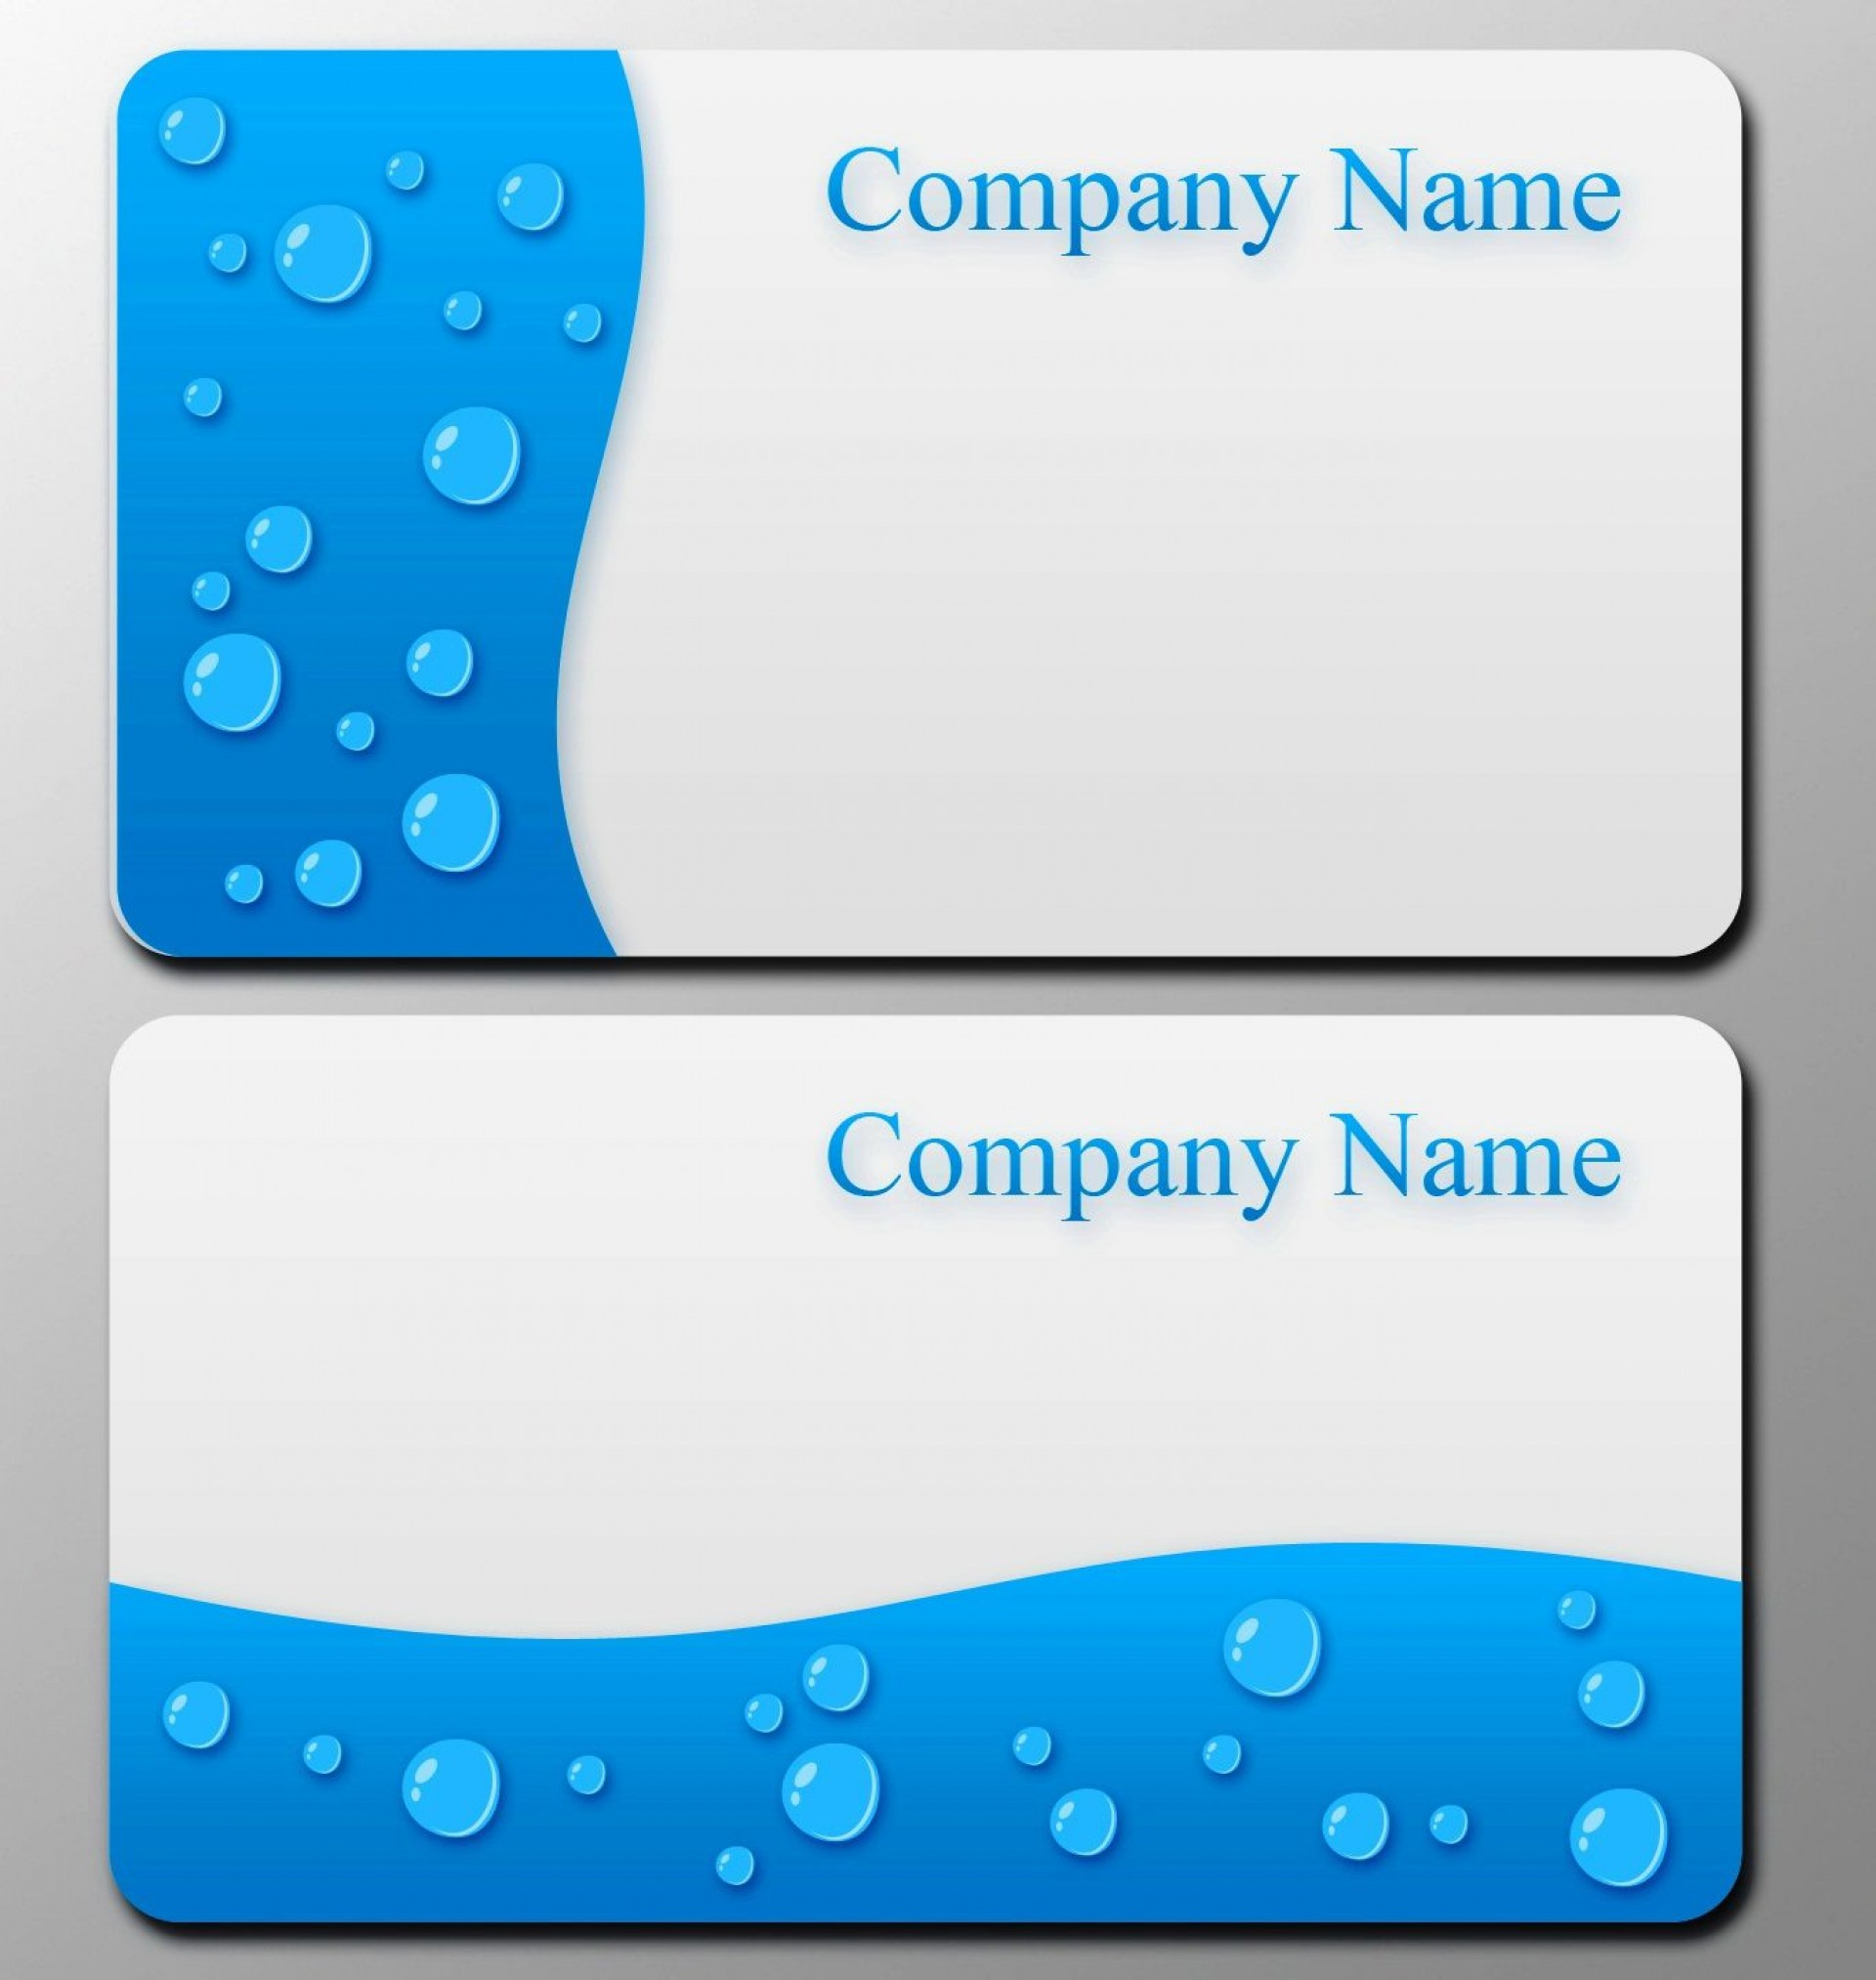 006 Incredible Blank Busines Card Template Psd Free Download Example  Photoshop1920